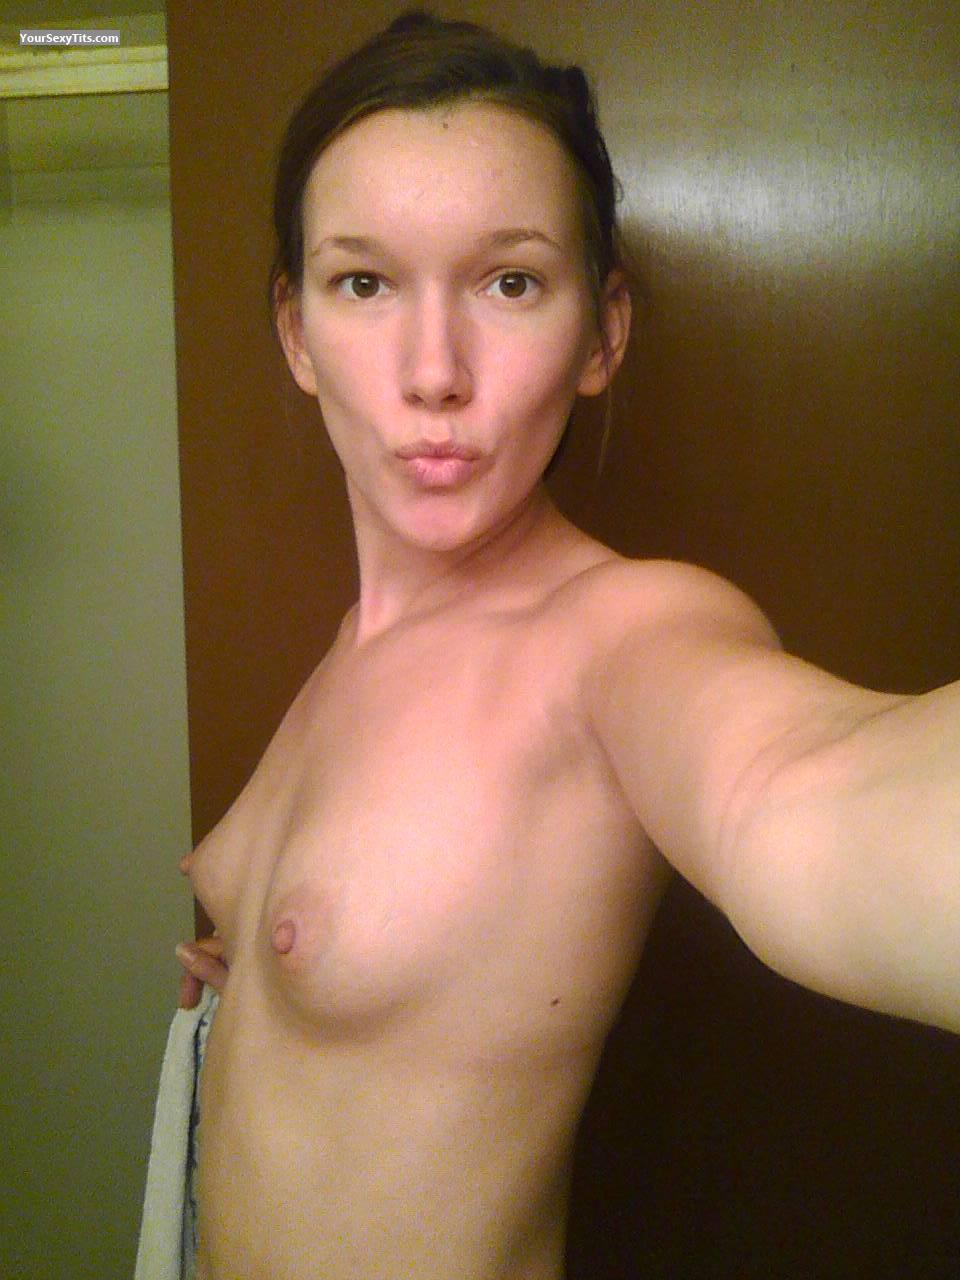 My Very Small Tits (Selfpic) - Topless College Girl from United ...